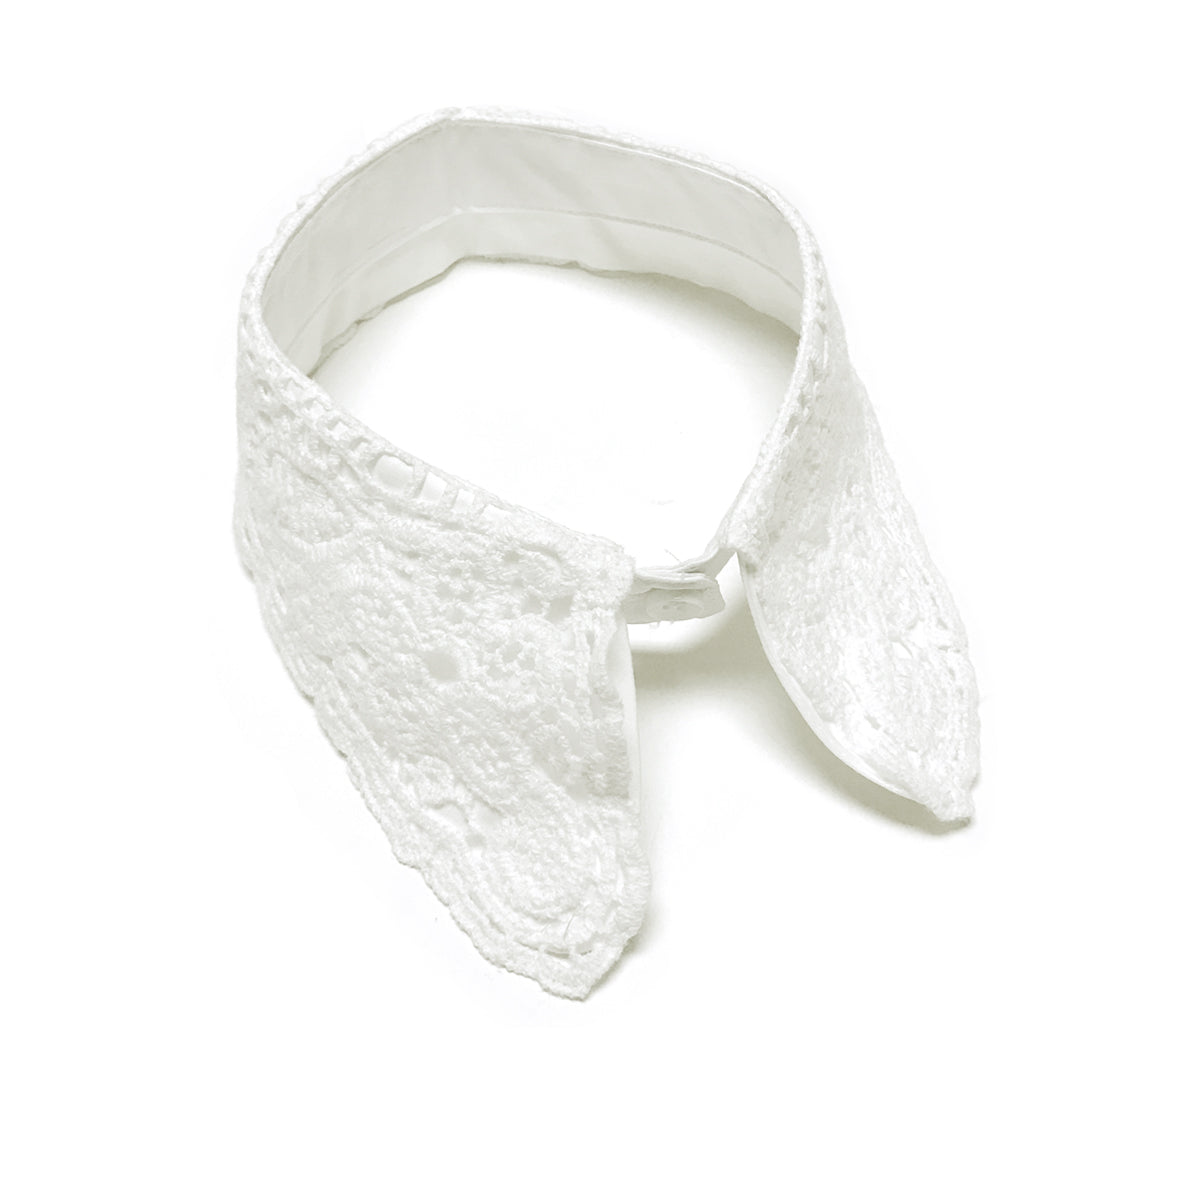 Wrapables Elegant Vintage Floral Lace Faux Collar